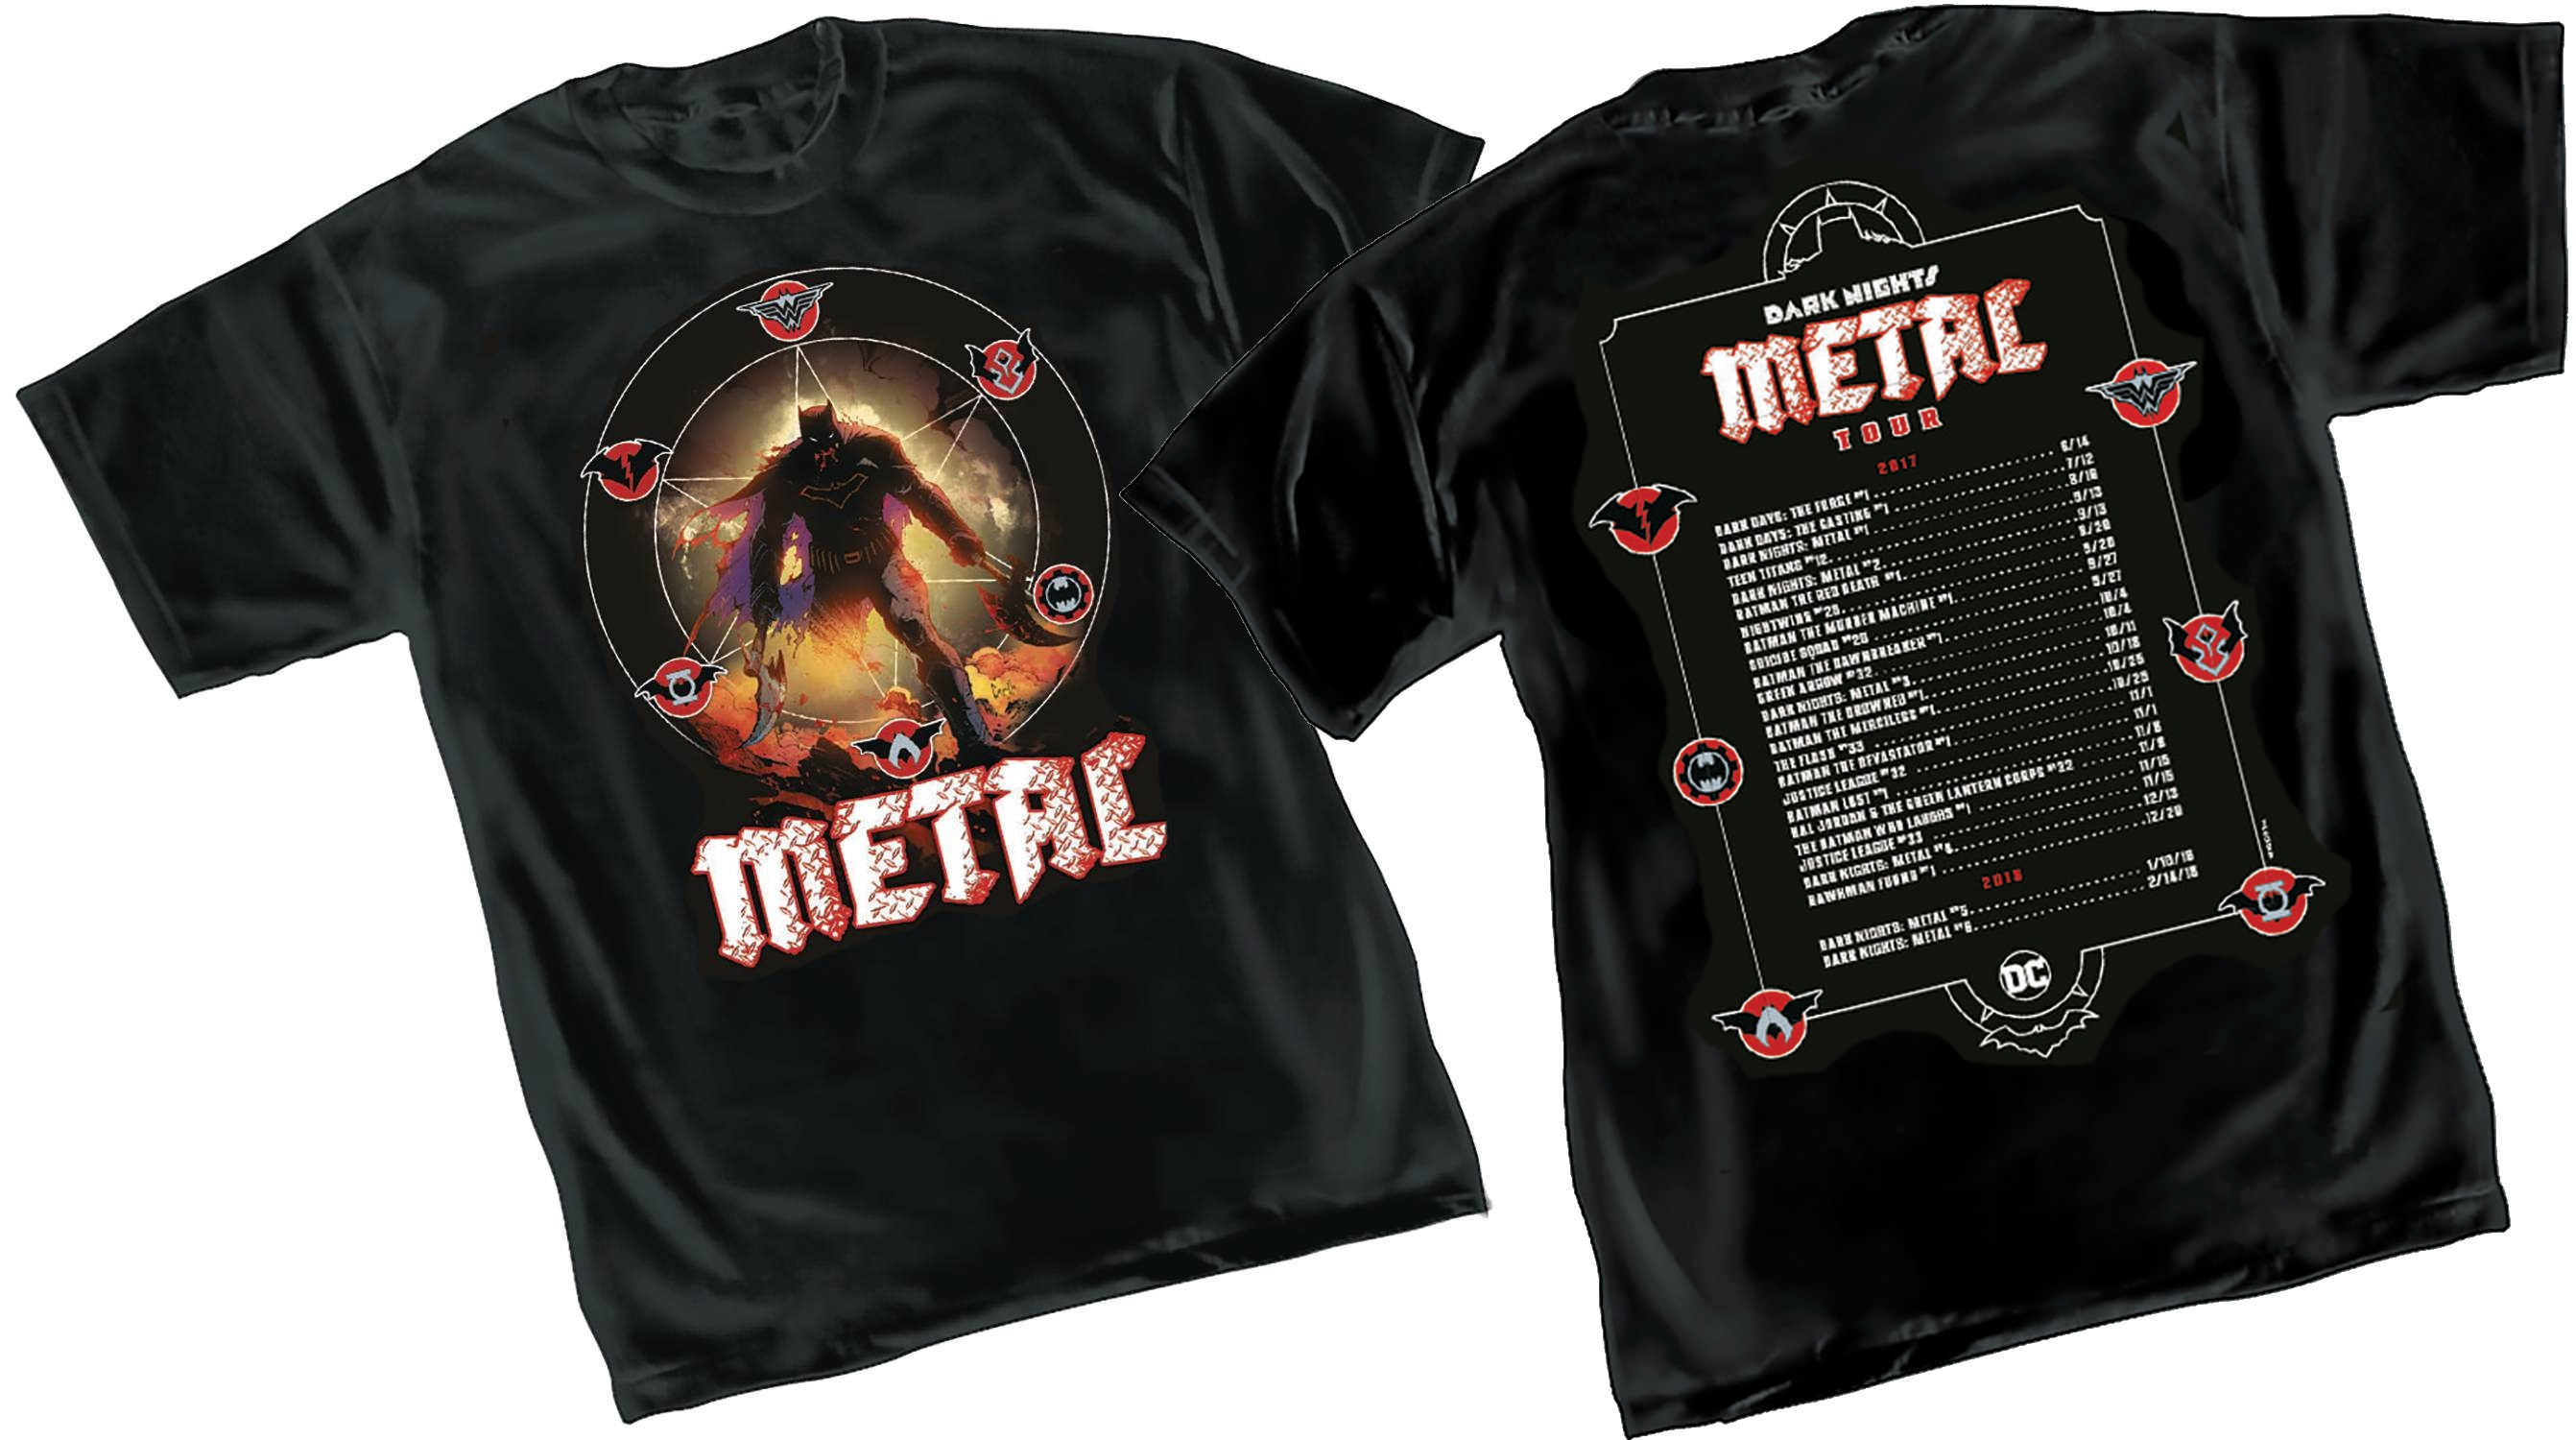 Dark Nights: Metal Tour T-Shirts From San Diego Comic-Con Coming To Comic Stores